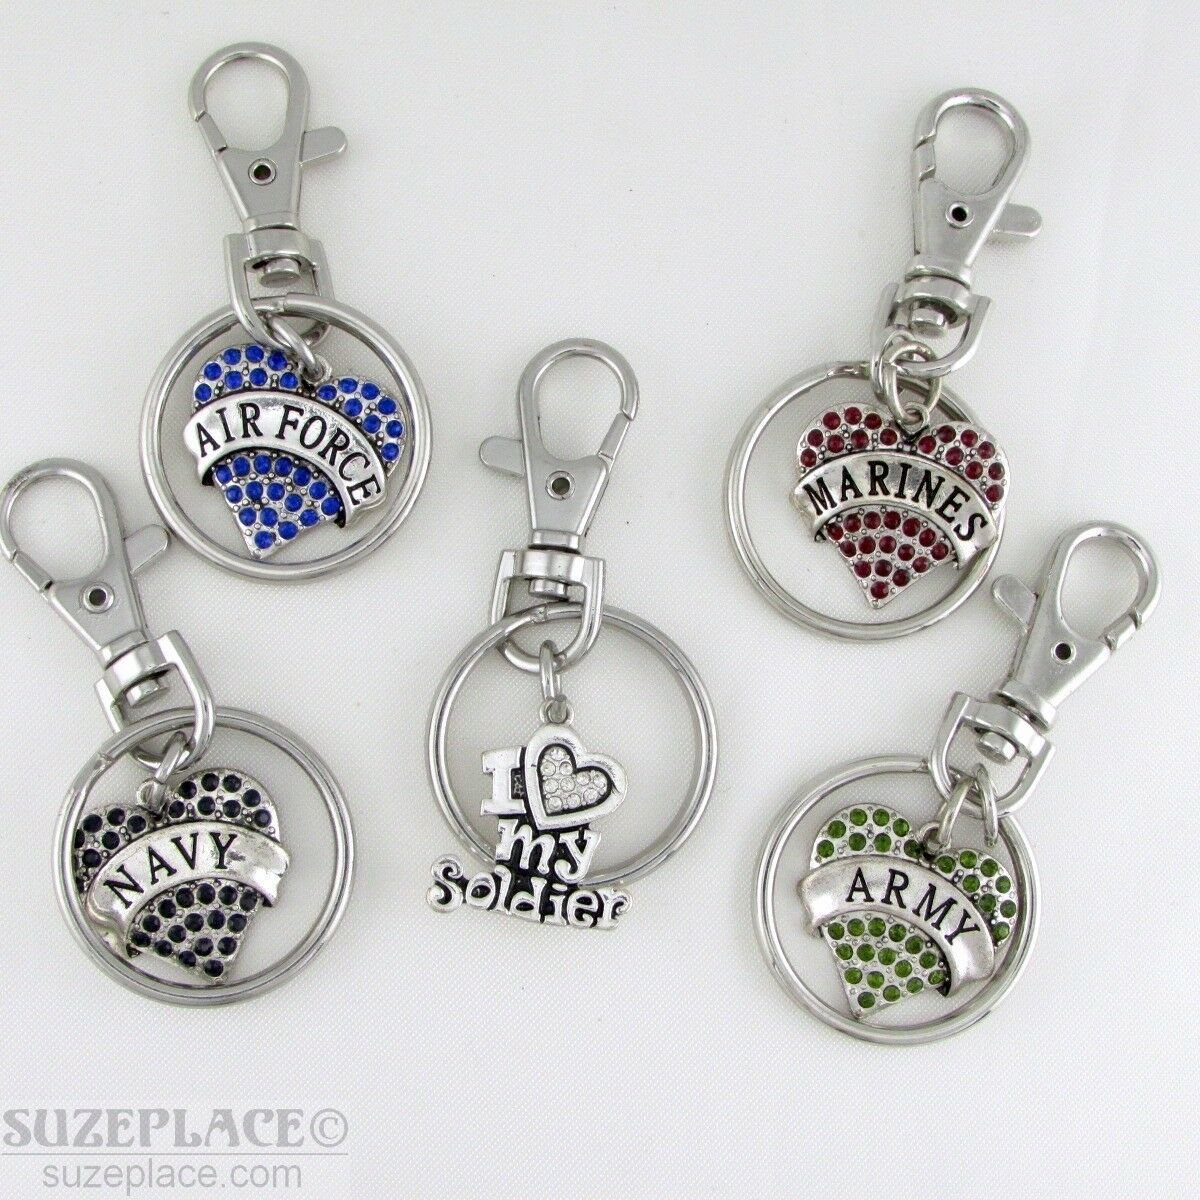 Primary image for NEW MILITARY CRYSTAL HEART KEY CHAINS ARMY AIR FORCE NAVY MARINES SOLDIER